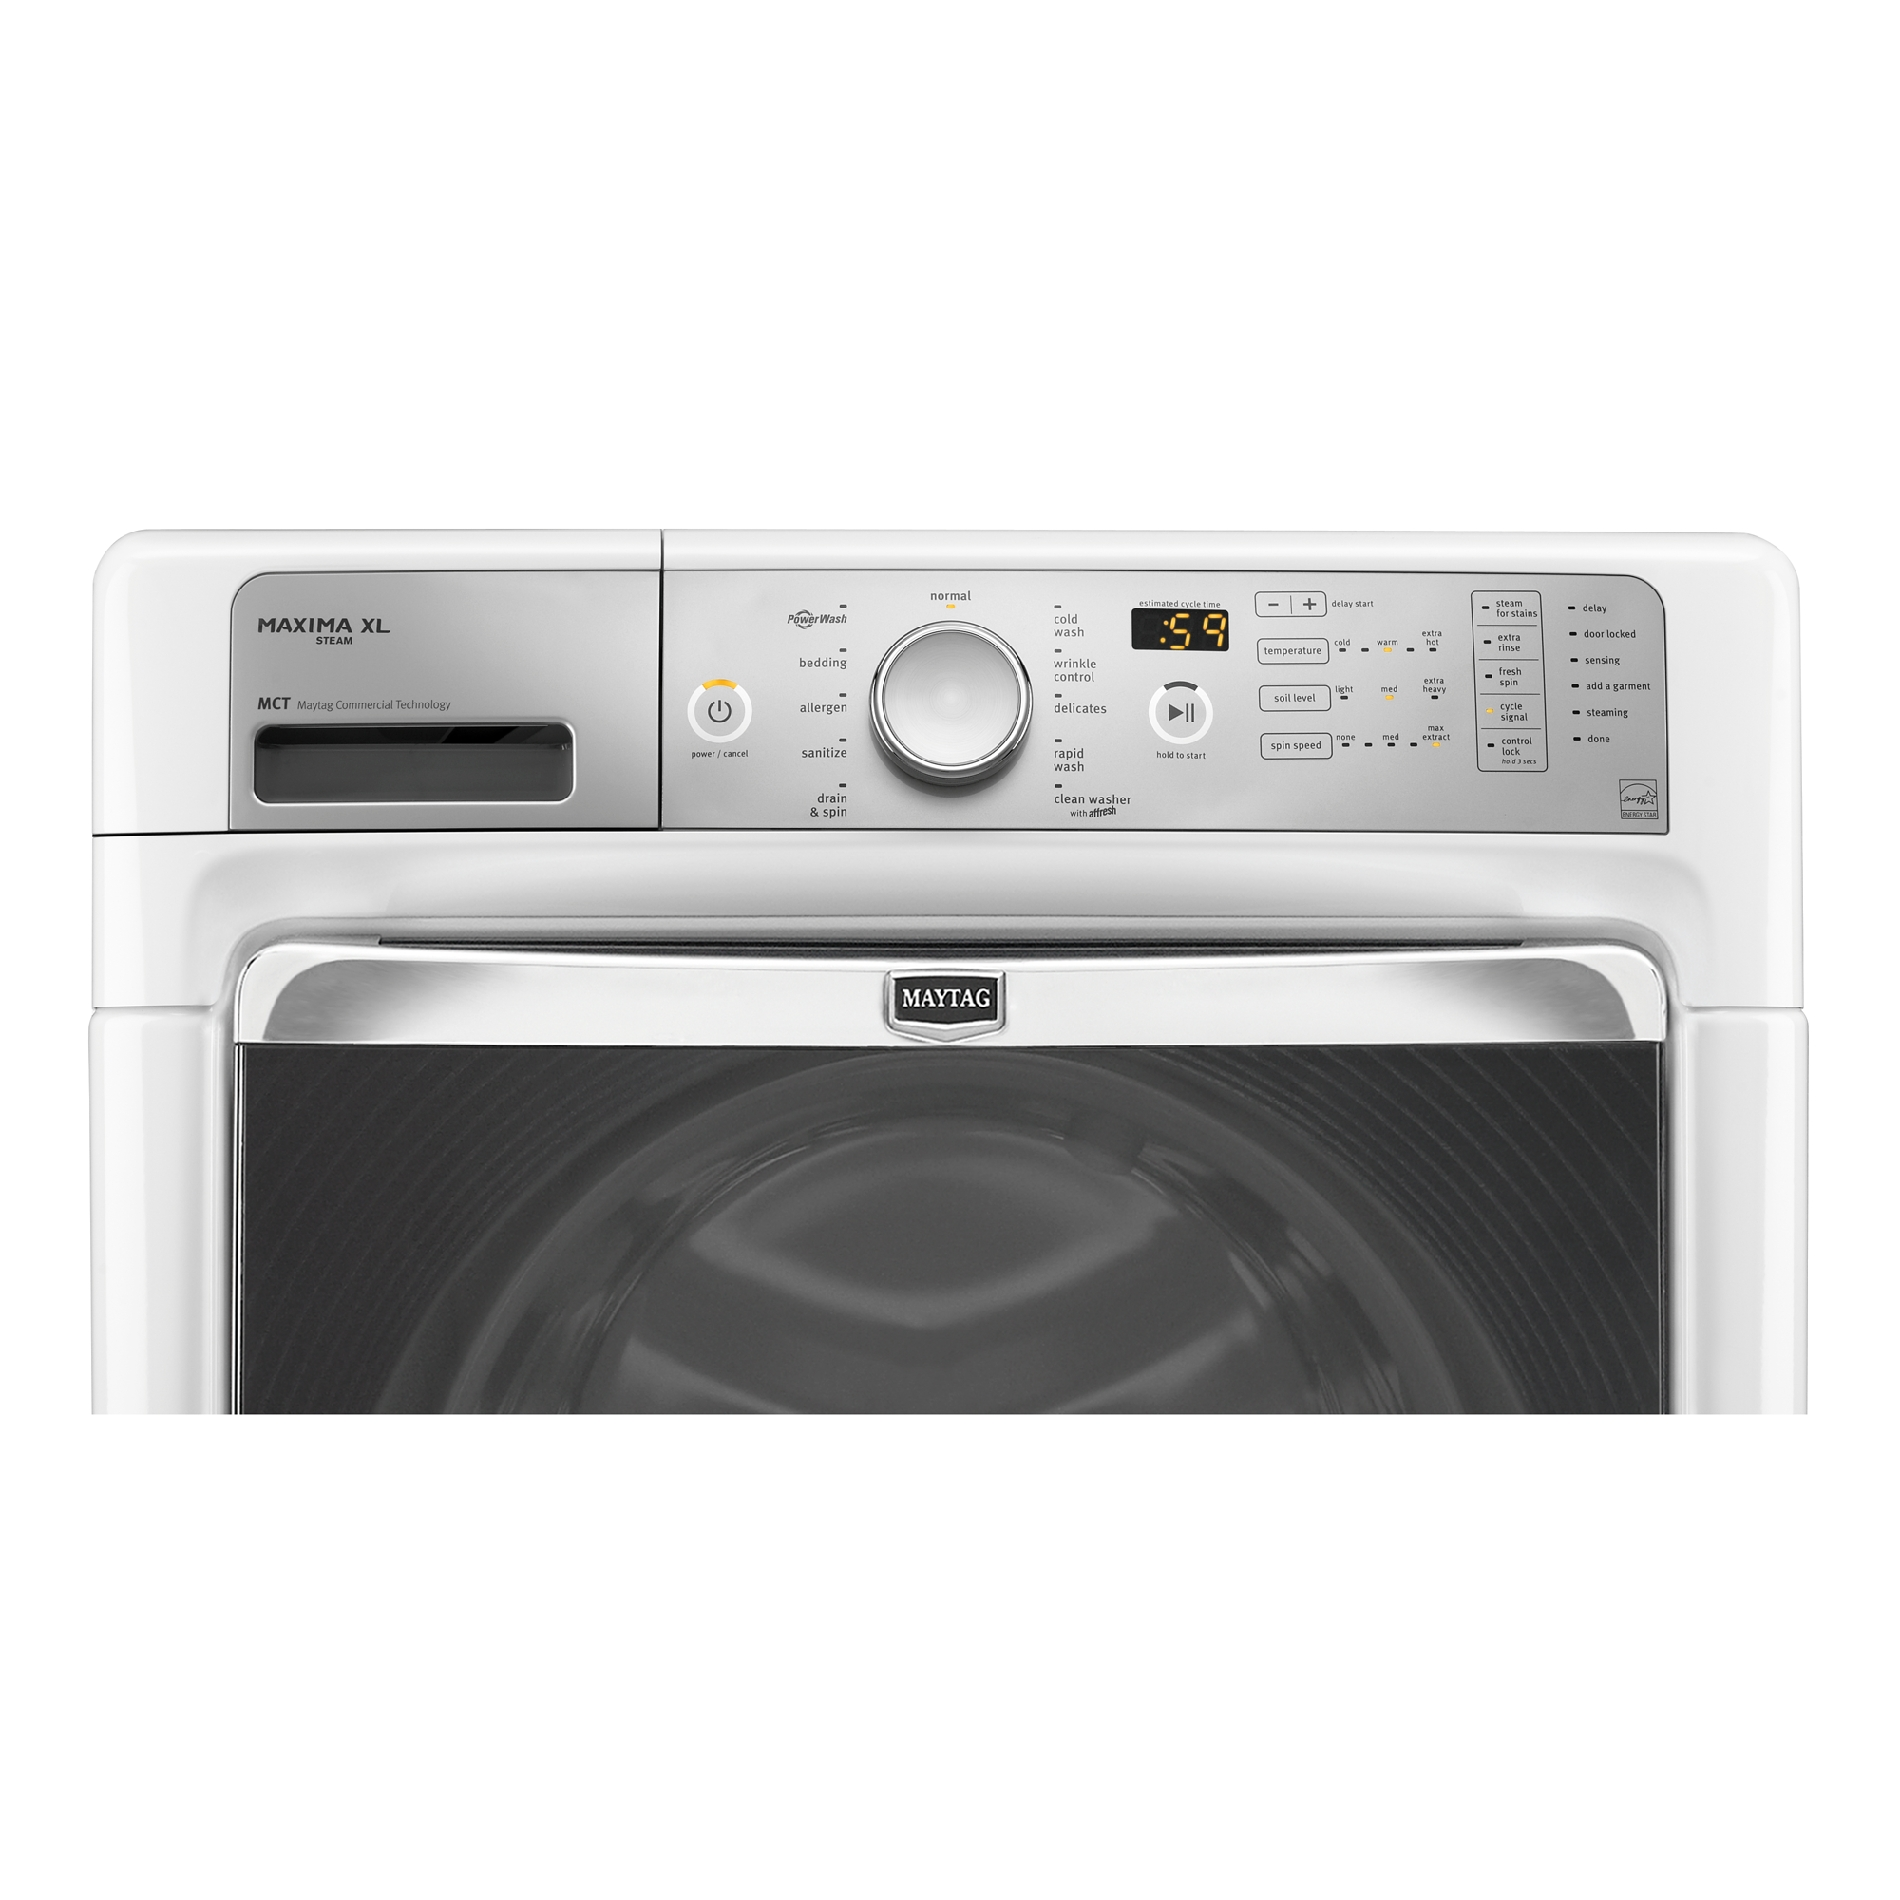 Maytag 4.3 cu. ft. Front-Load Washer w/ Steam - White